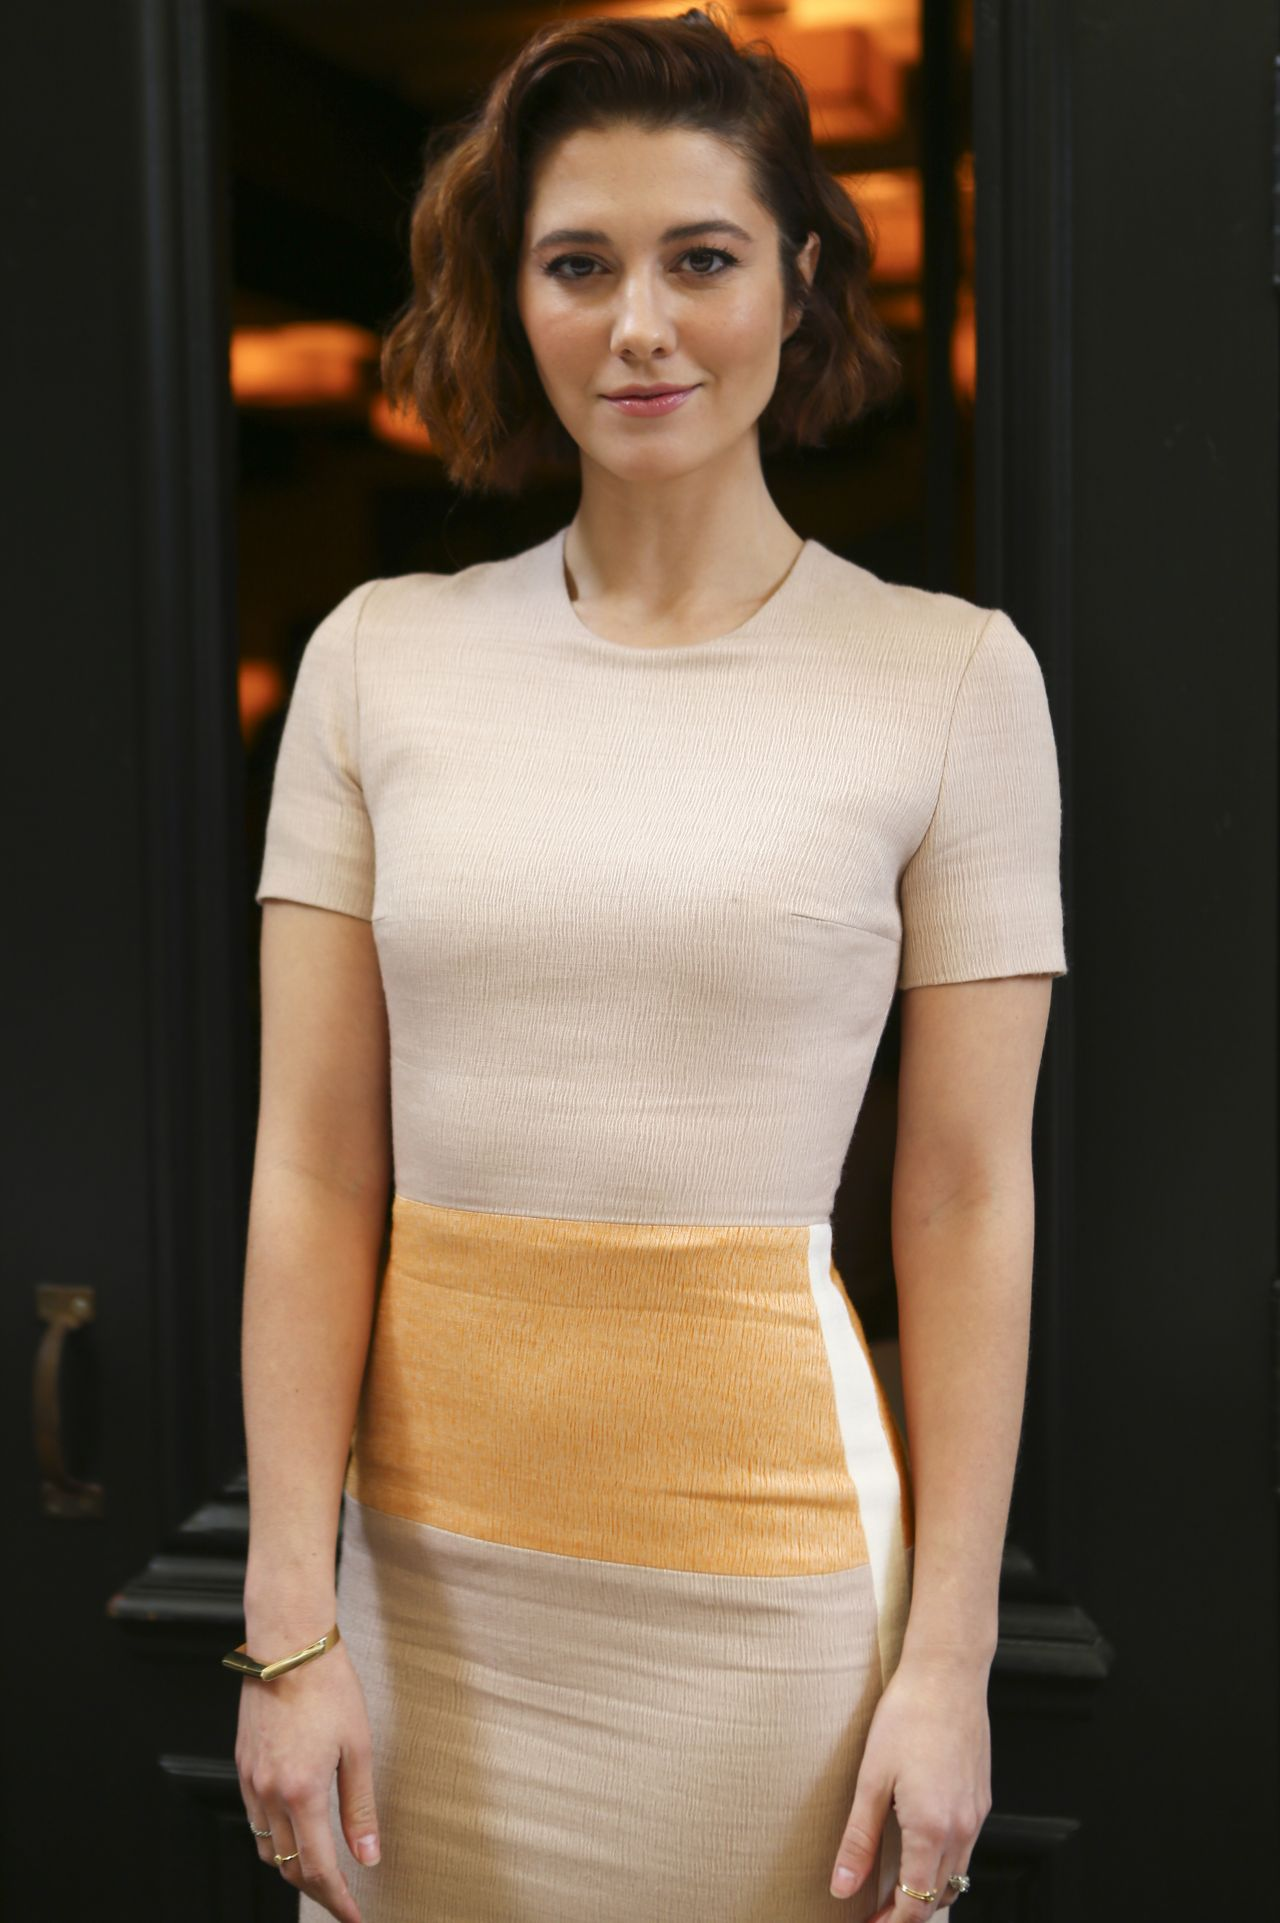 Mary elizabeth winstead photo gallery - page #2 celebs-placecom